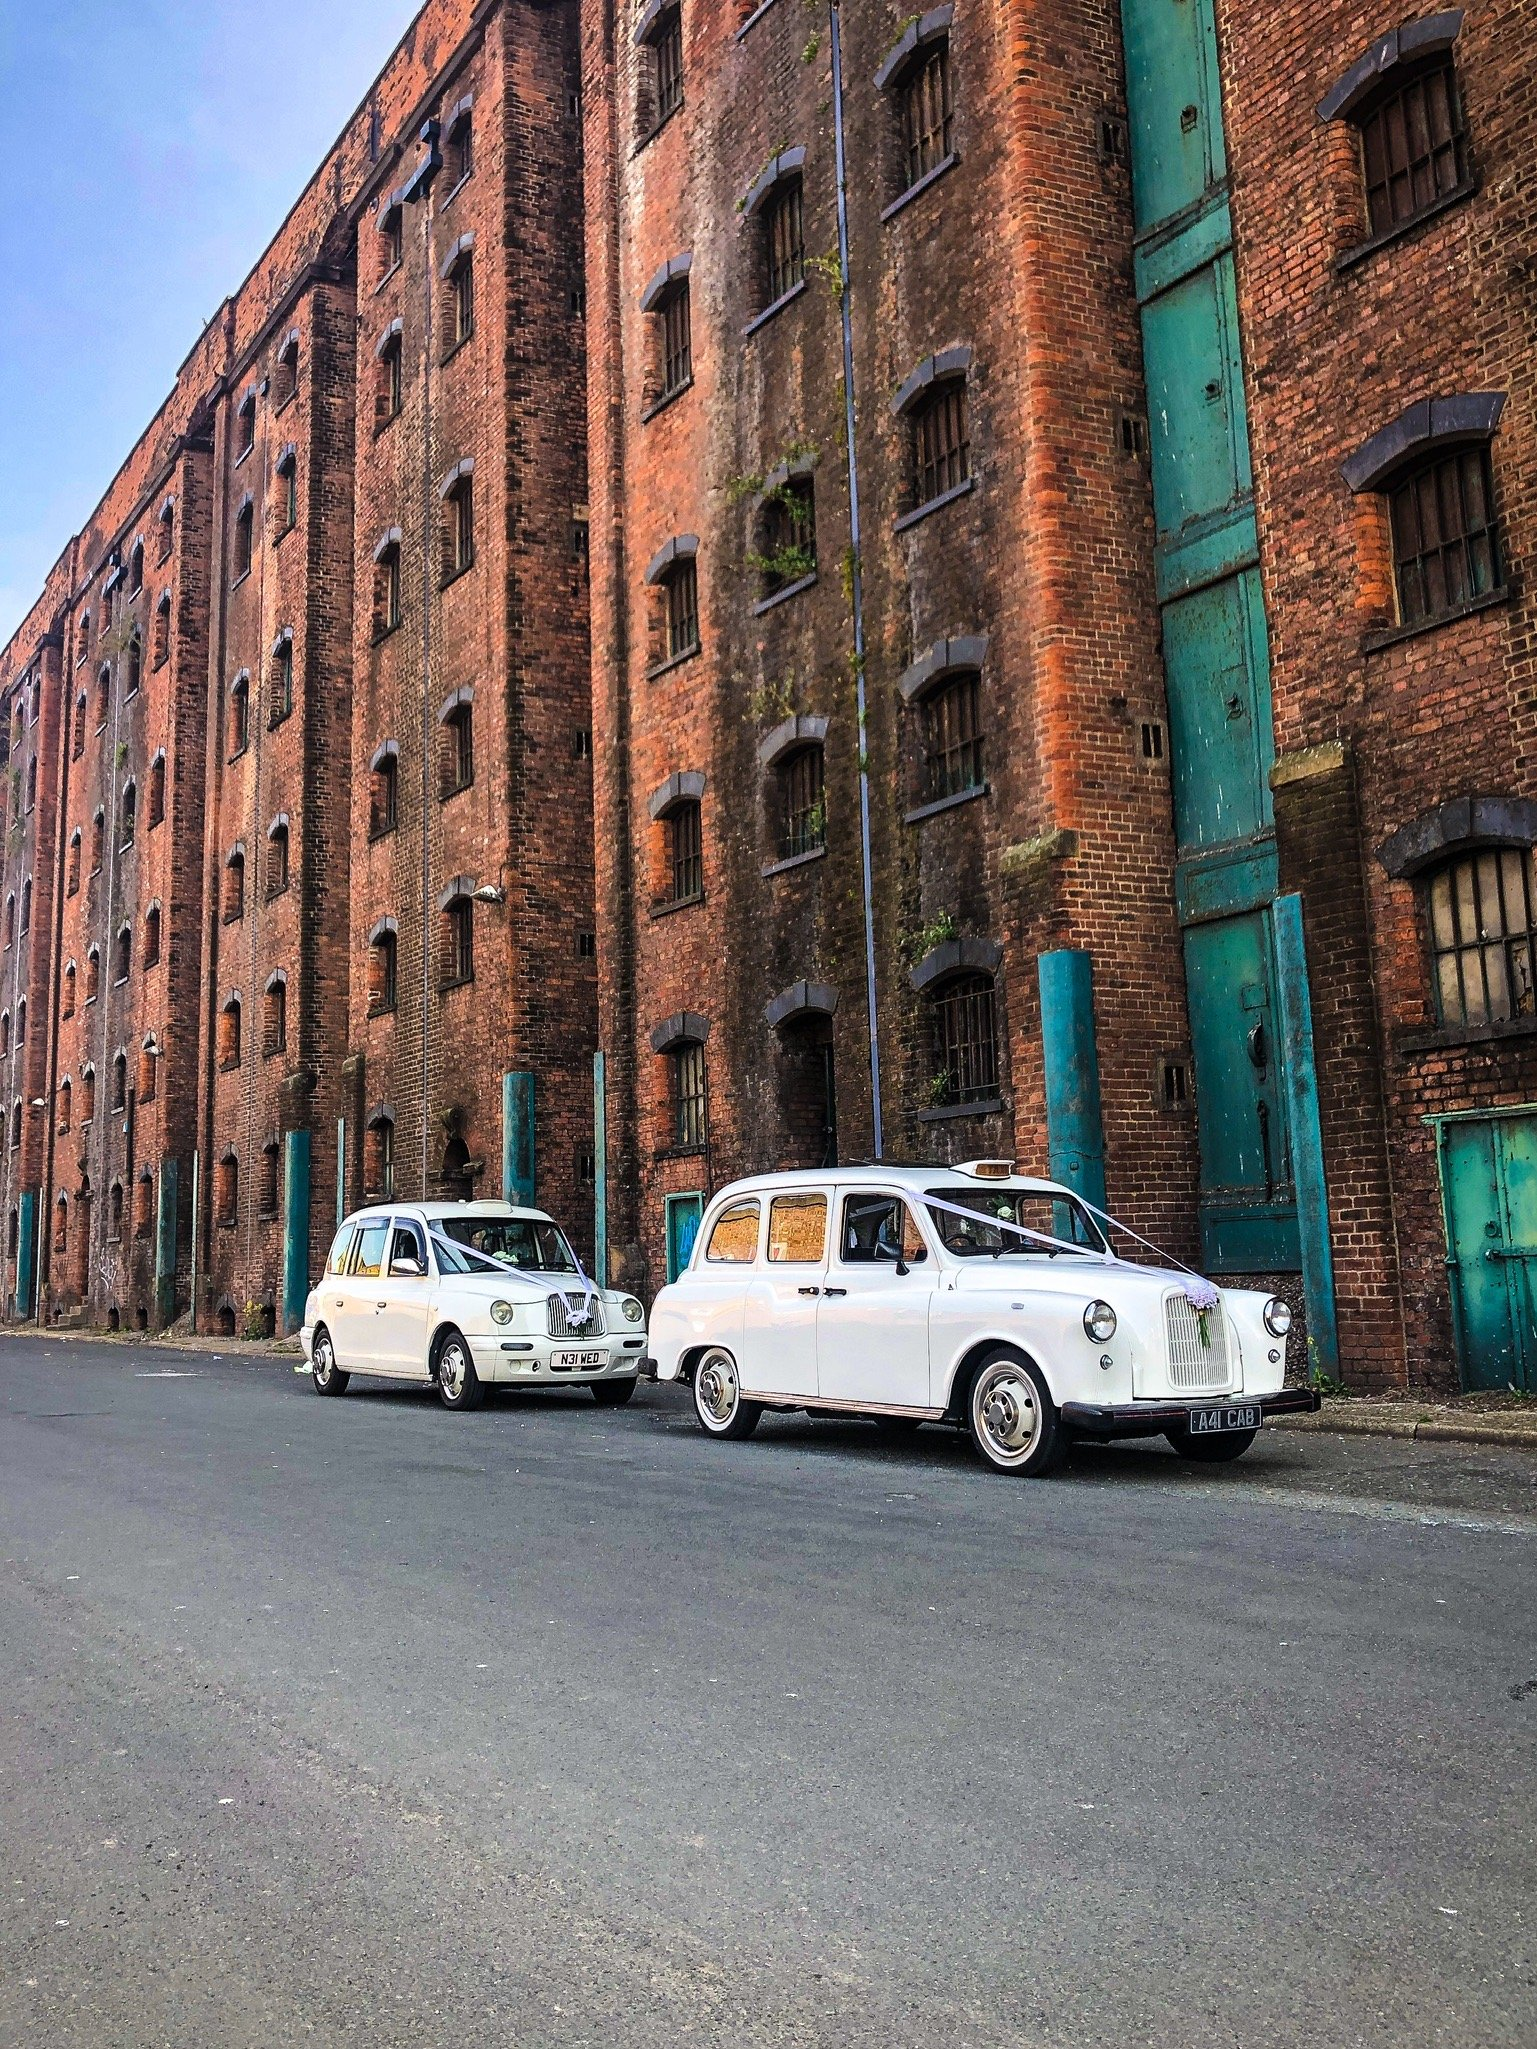 Liverpool Wedding Taxis cabs cars